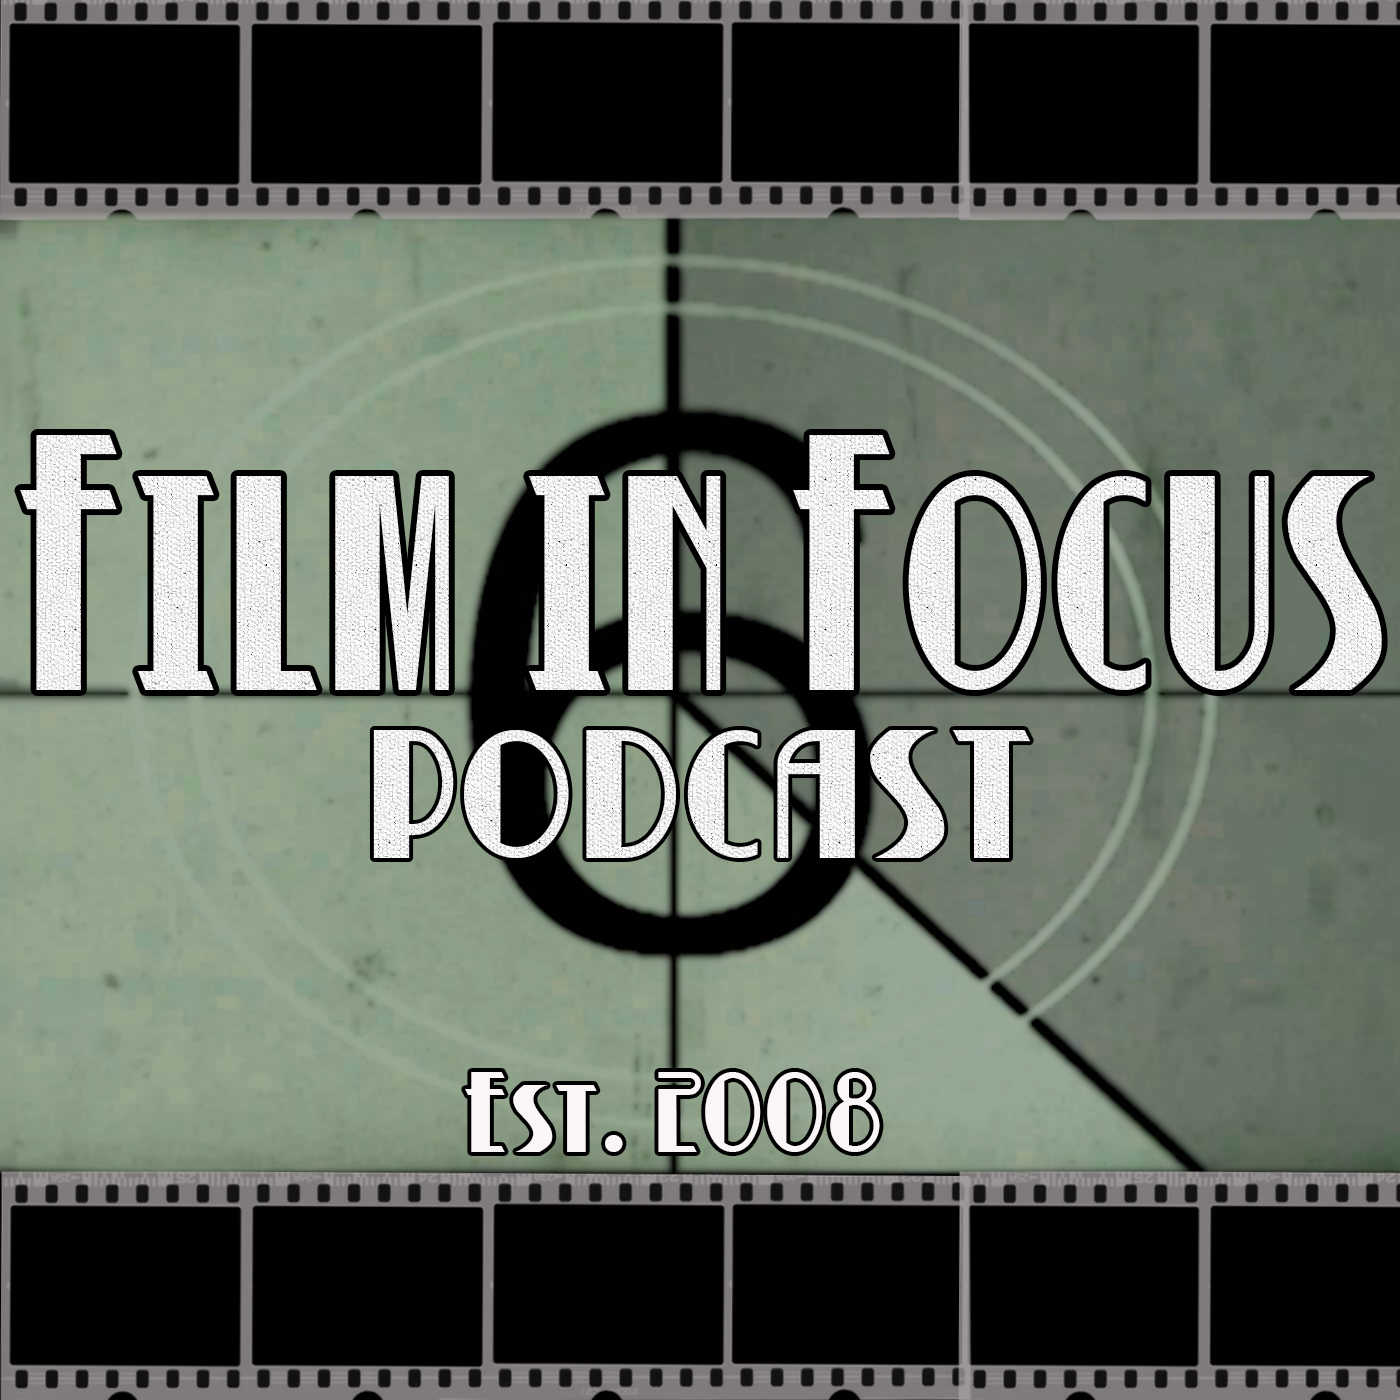 Film in Focus